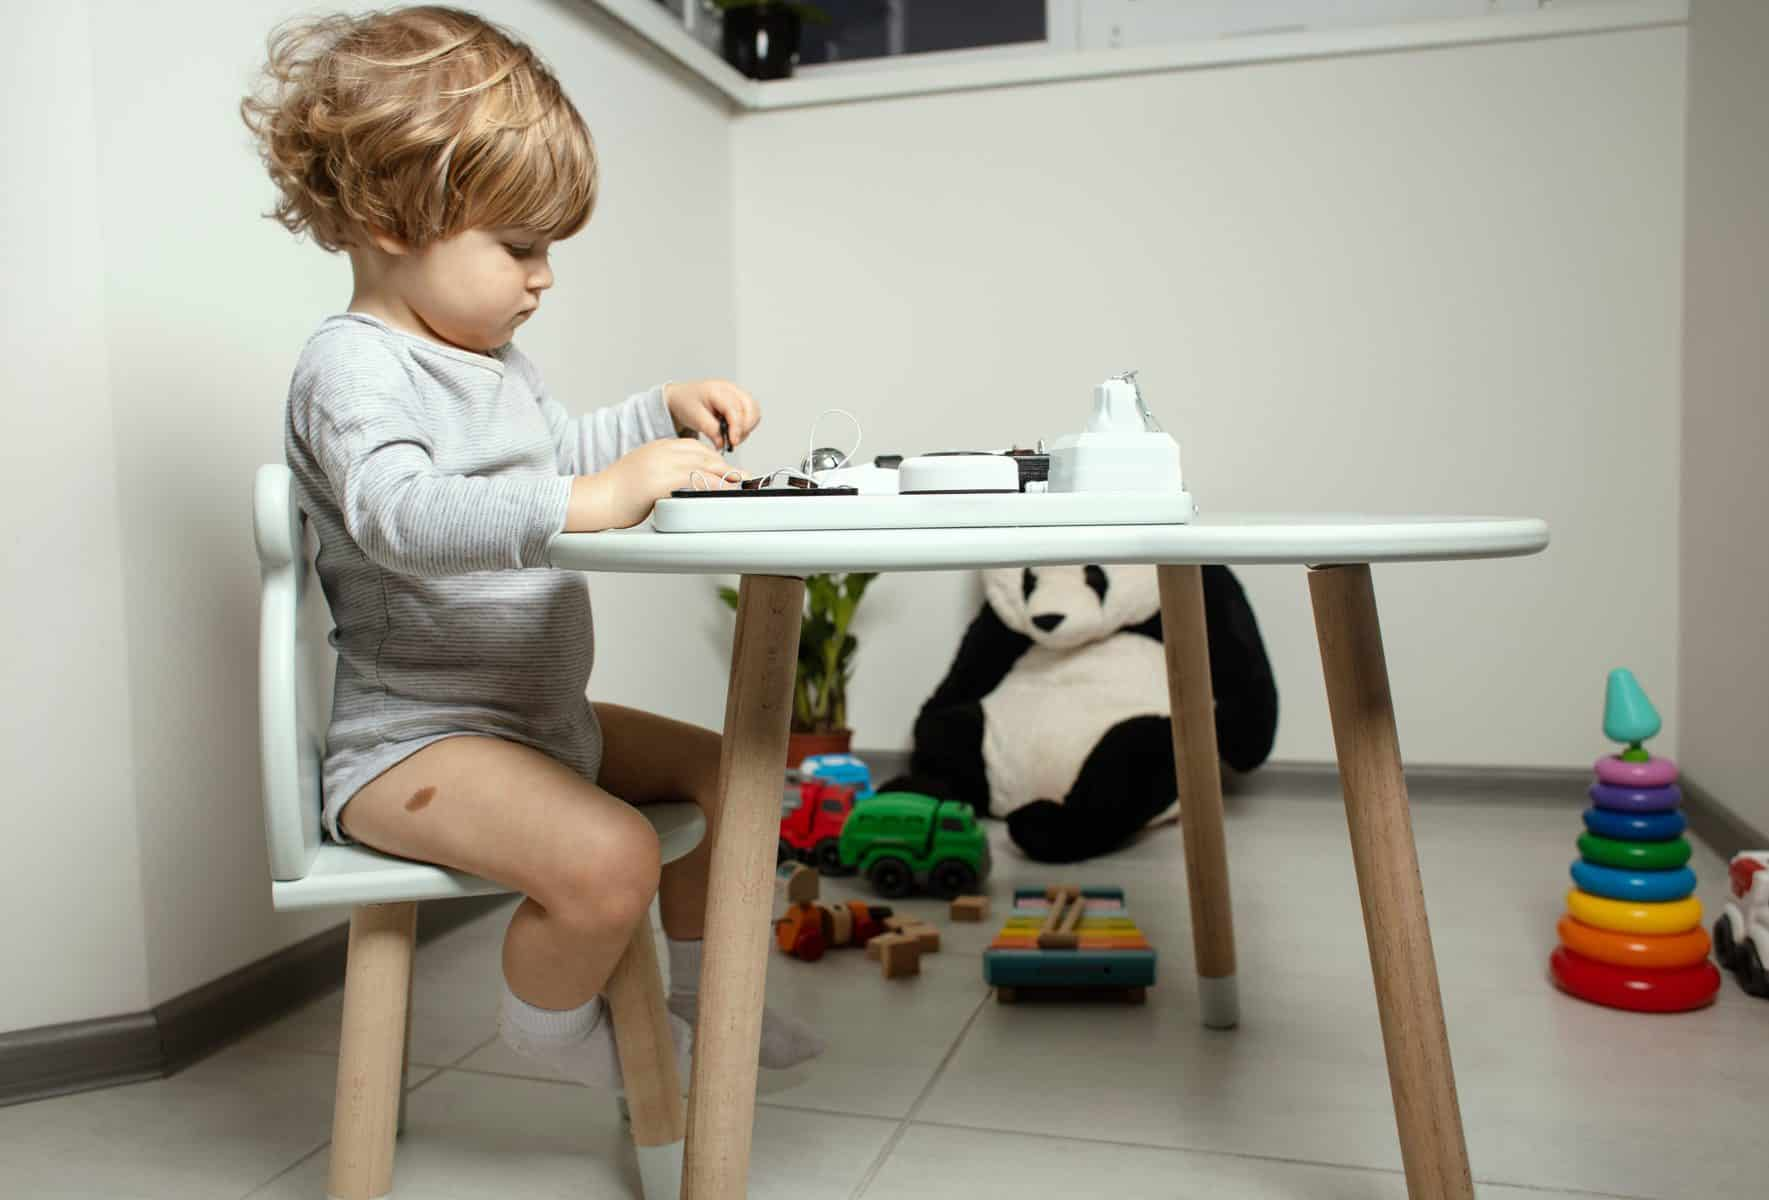 Best Toddler Activity Table | 2021 Reviews